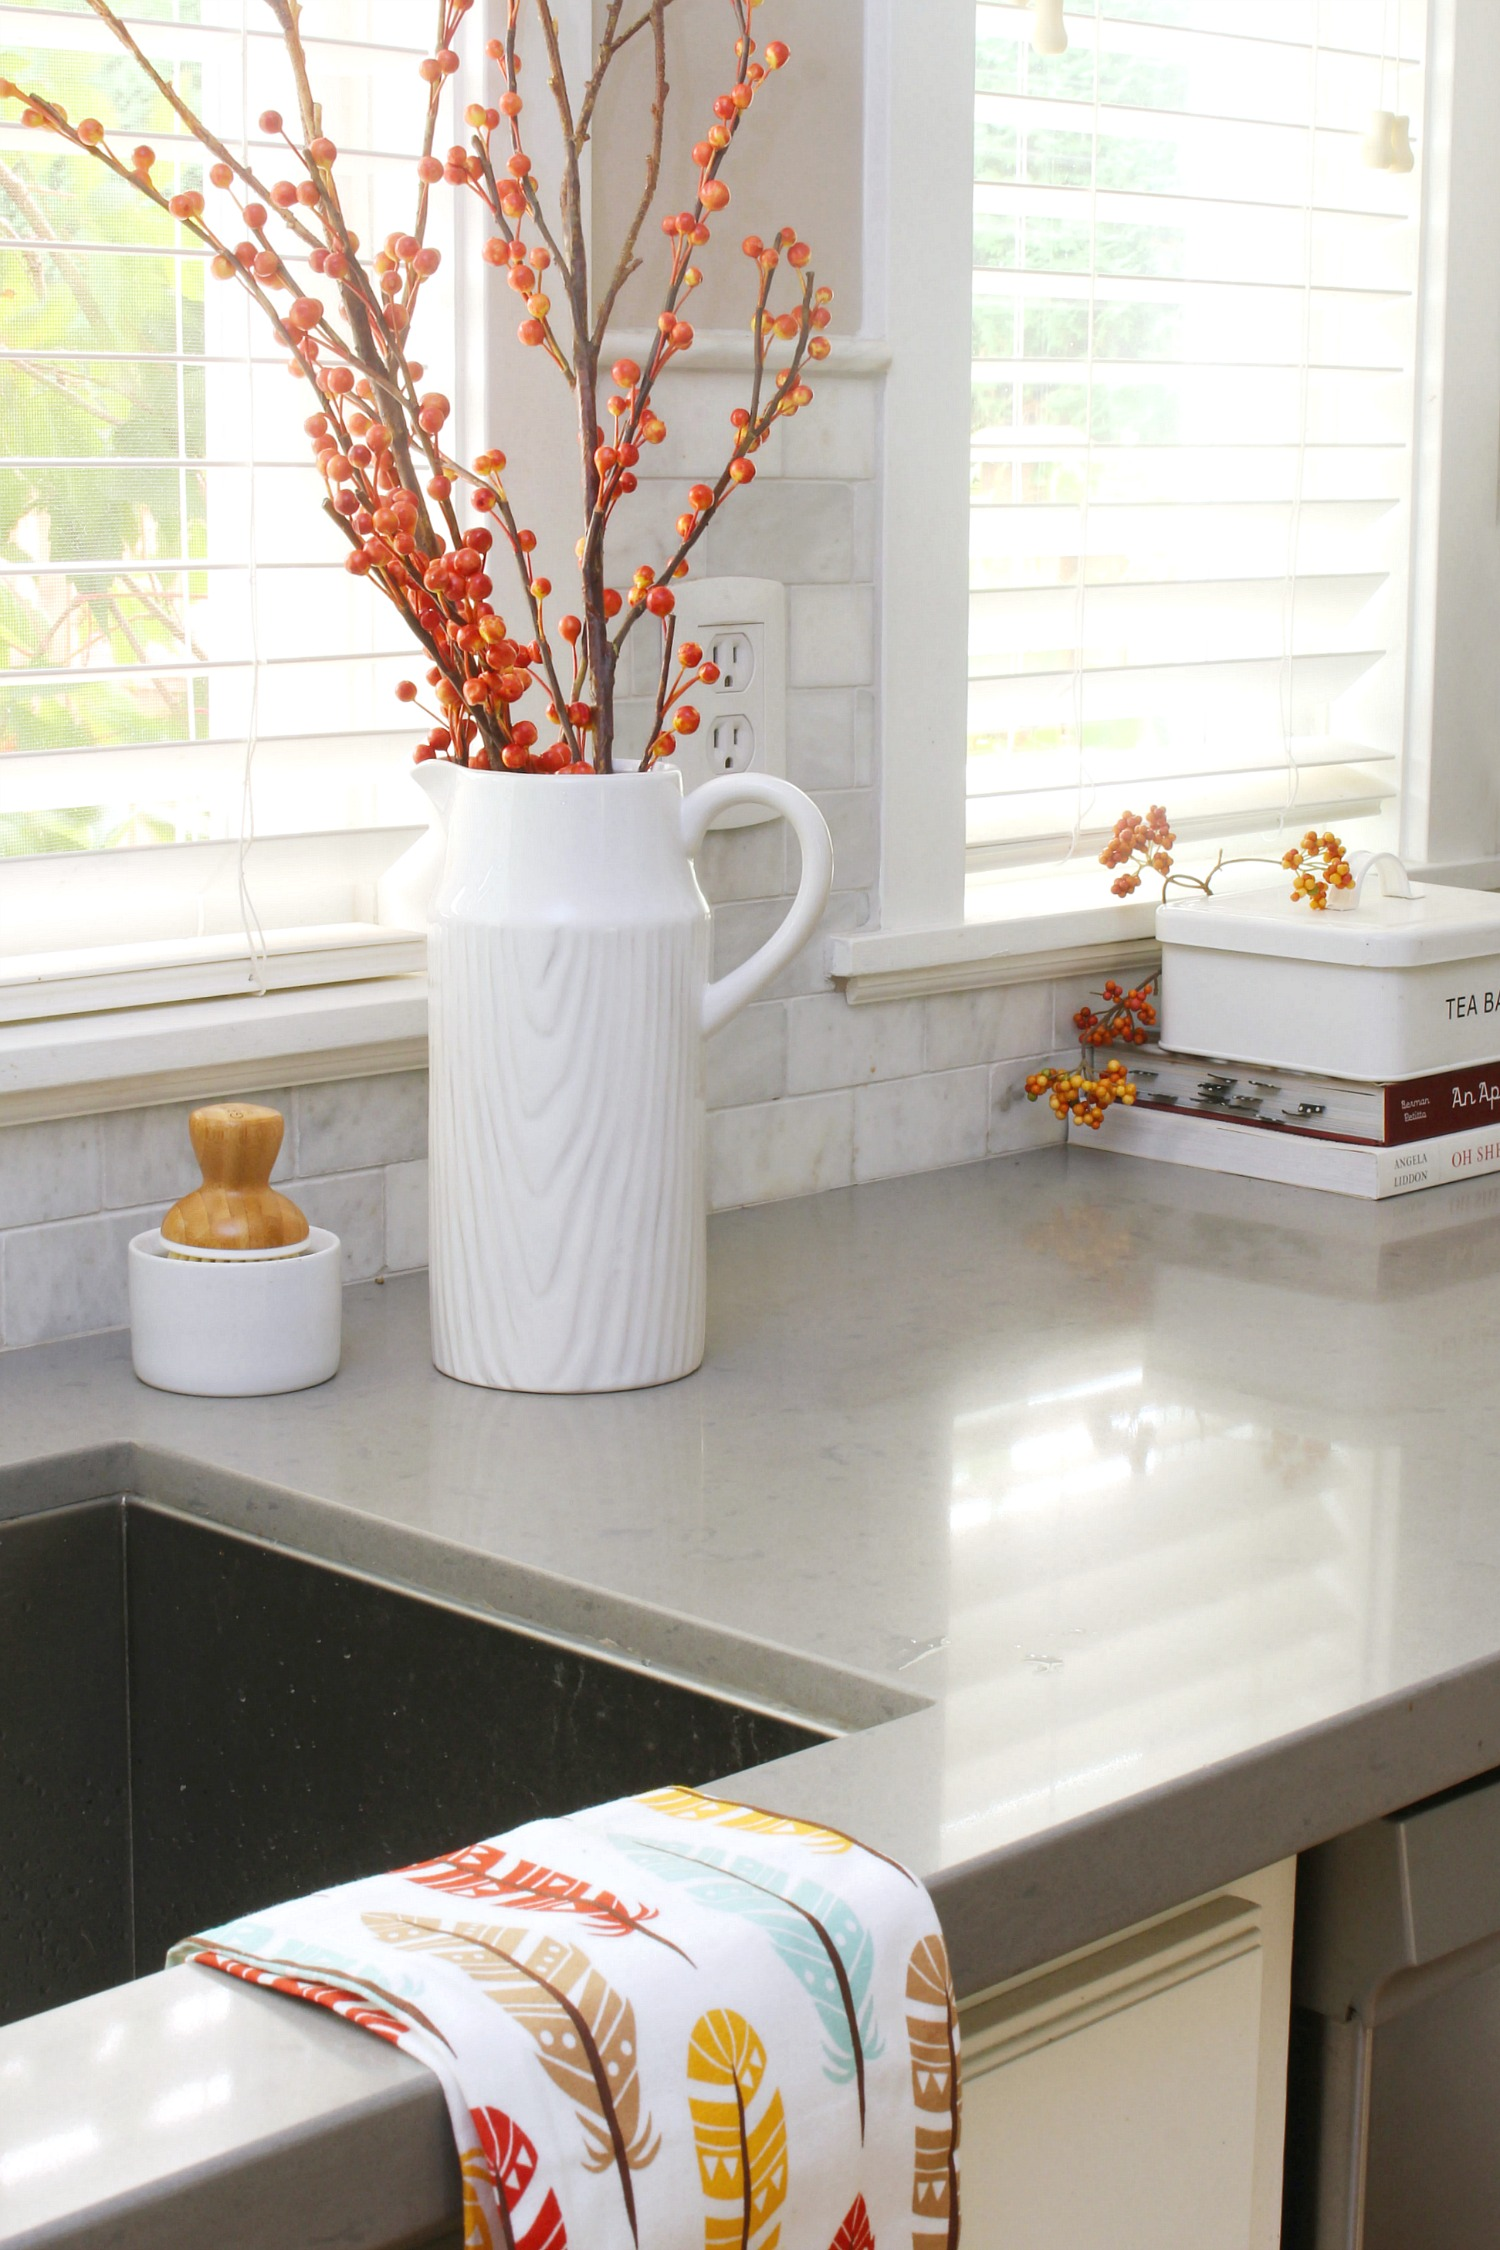 Easy Fall Kitchen Decorating Ideas   Clean and Scentsible Easy fall kitchen decorating ideas  Simple ways to add some fall to your  kitchen decor